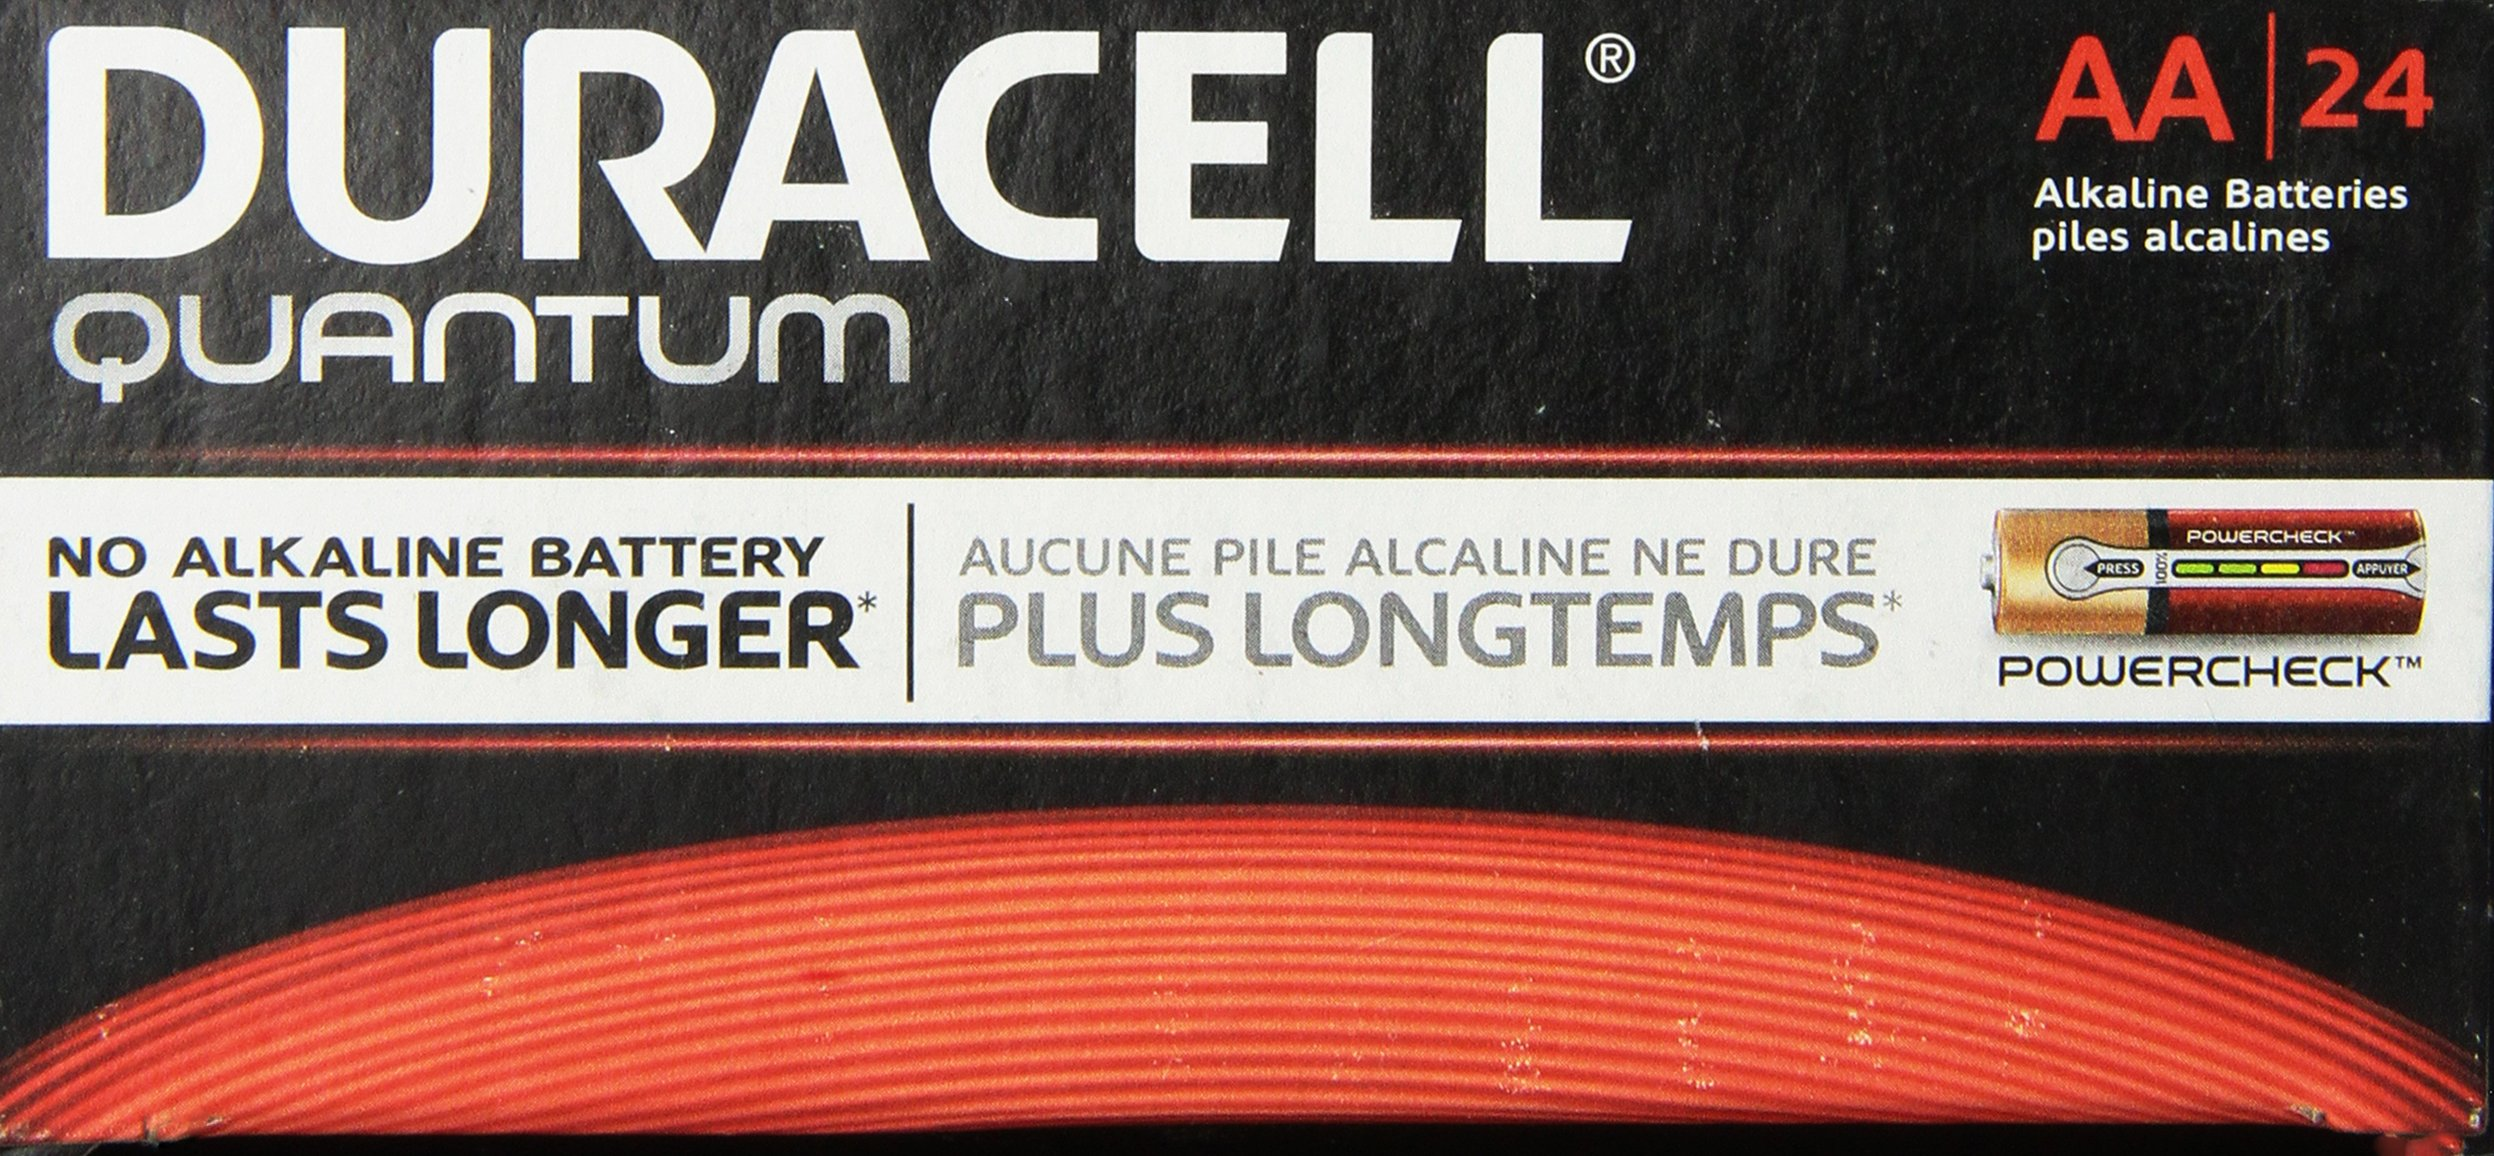 Duracell - Quantum AA Alkaline Batteries - Long Lasting, All-Purpose Double A Battery for Household and Business - Pack of 24